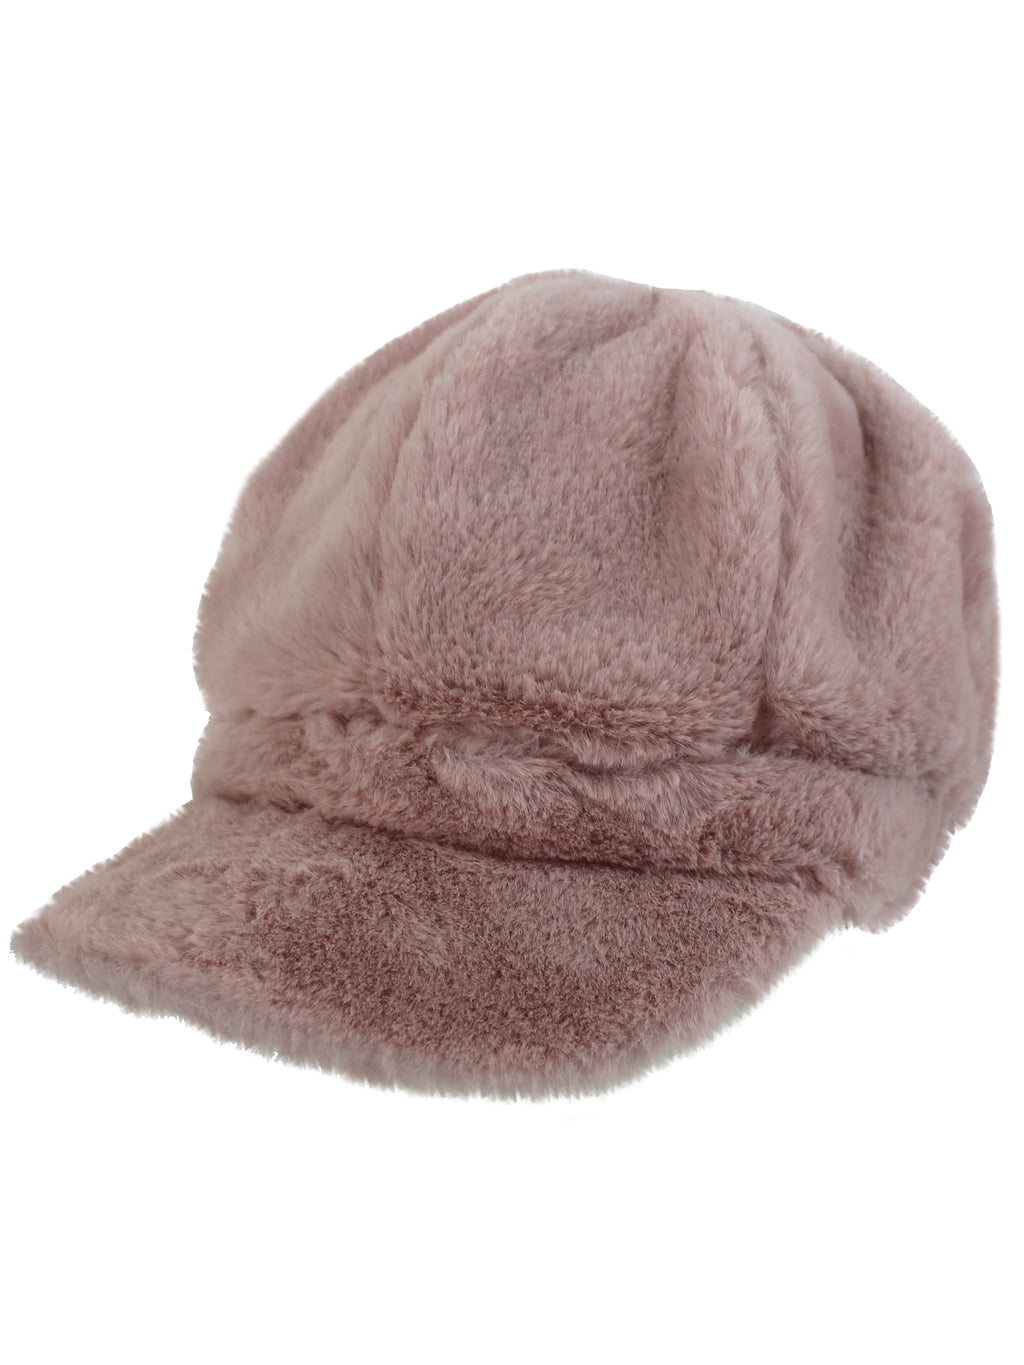 Blush Pink Faux Fur Cabbie Newsboy Hat